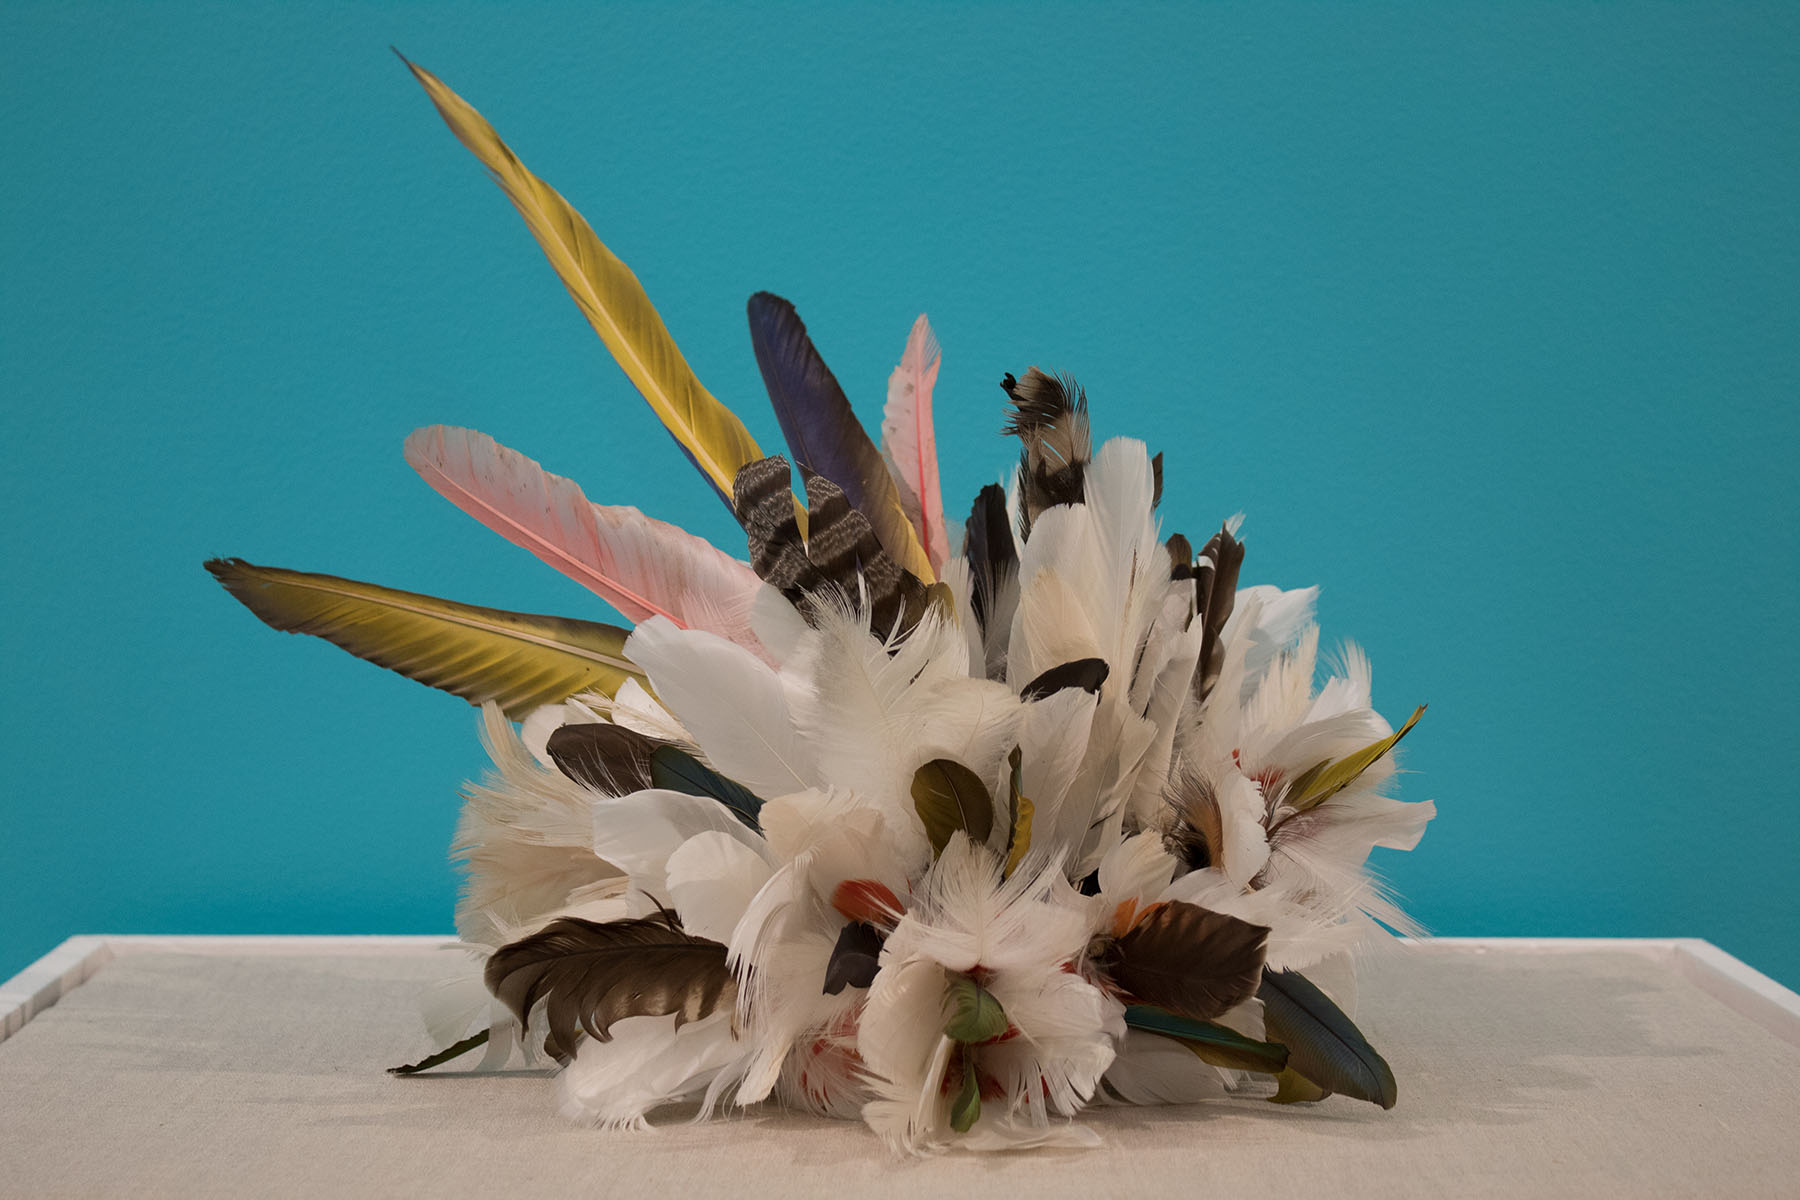 Art piece: clump of feathers